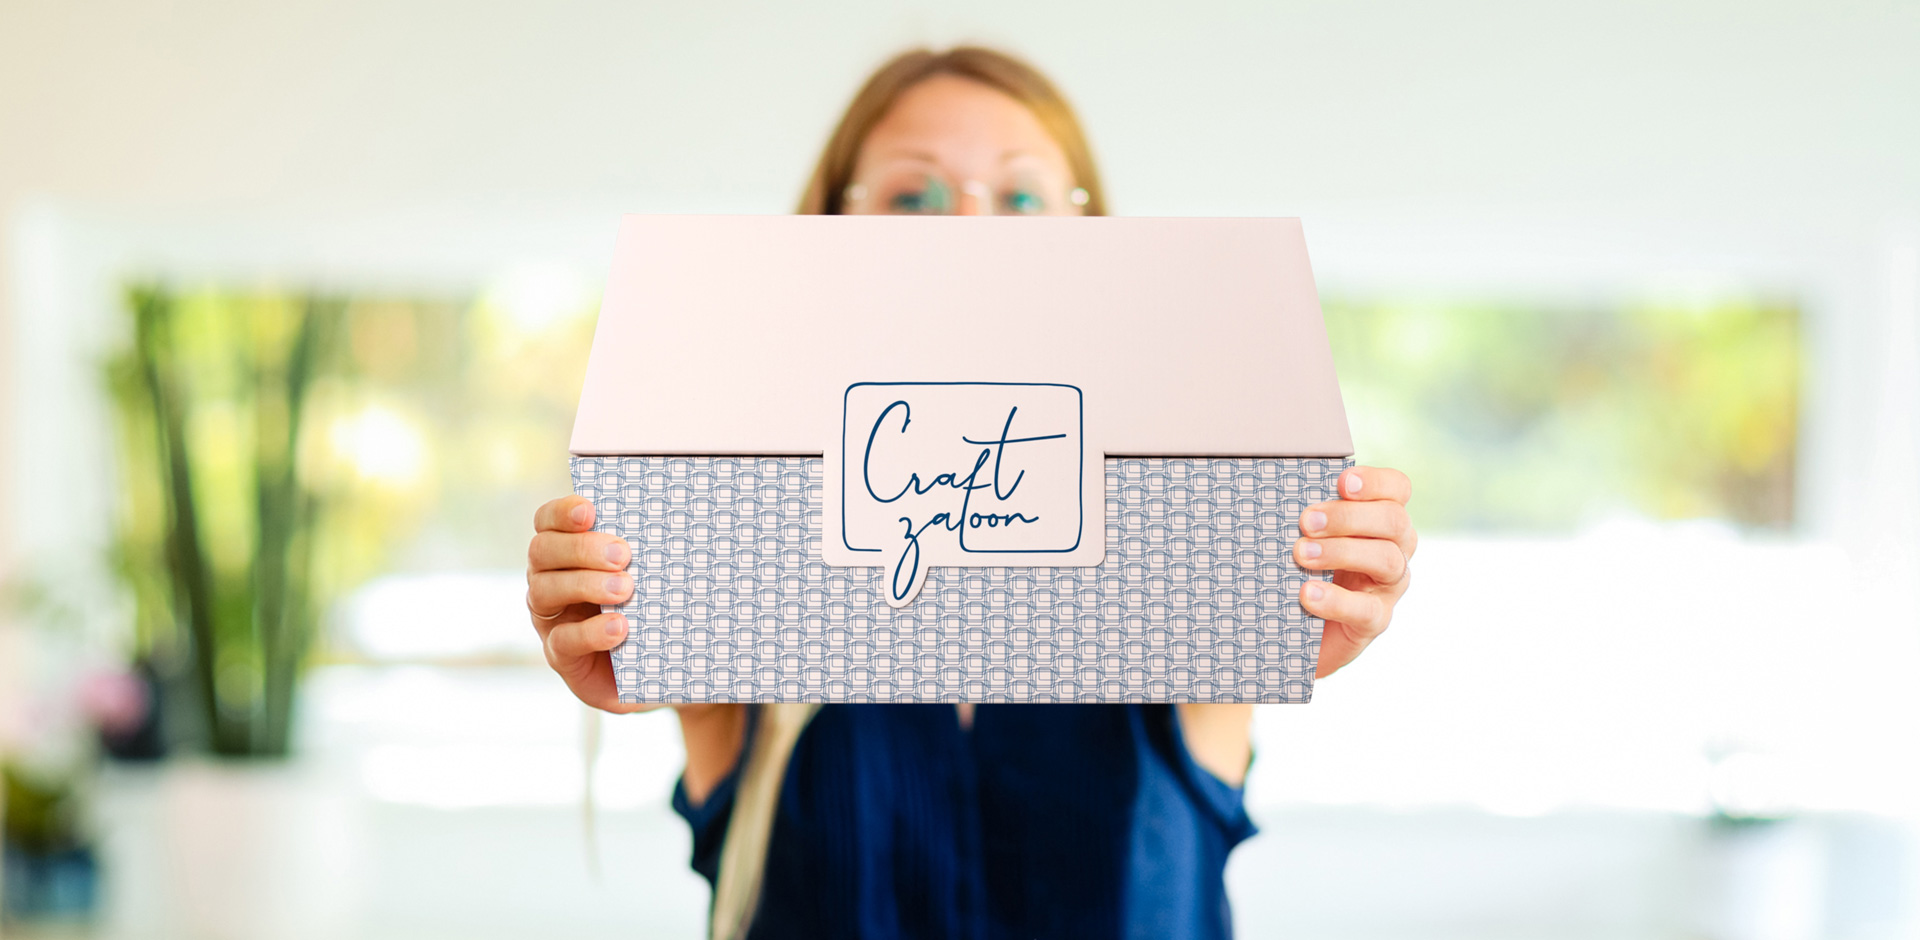 Craftzaloon Branding und Box Design by HEY SISTER!